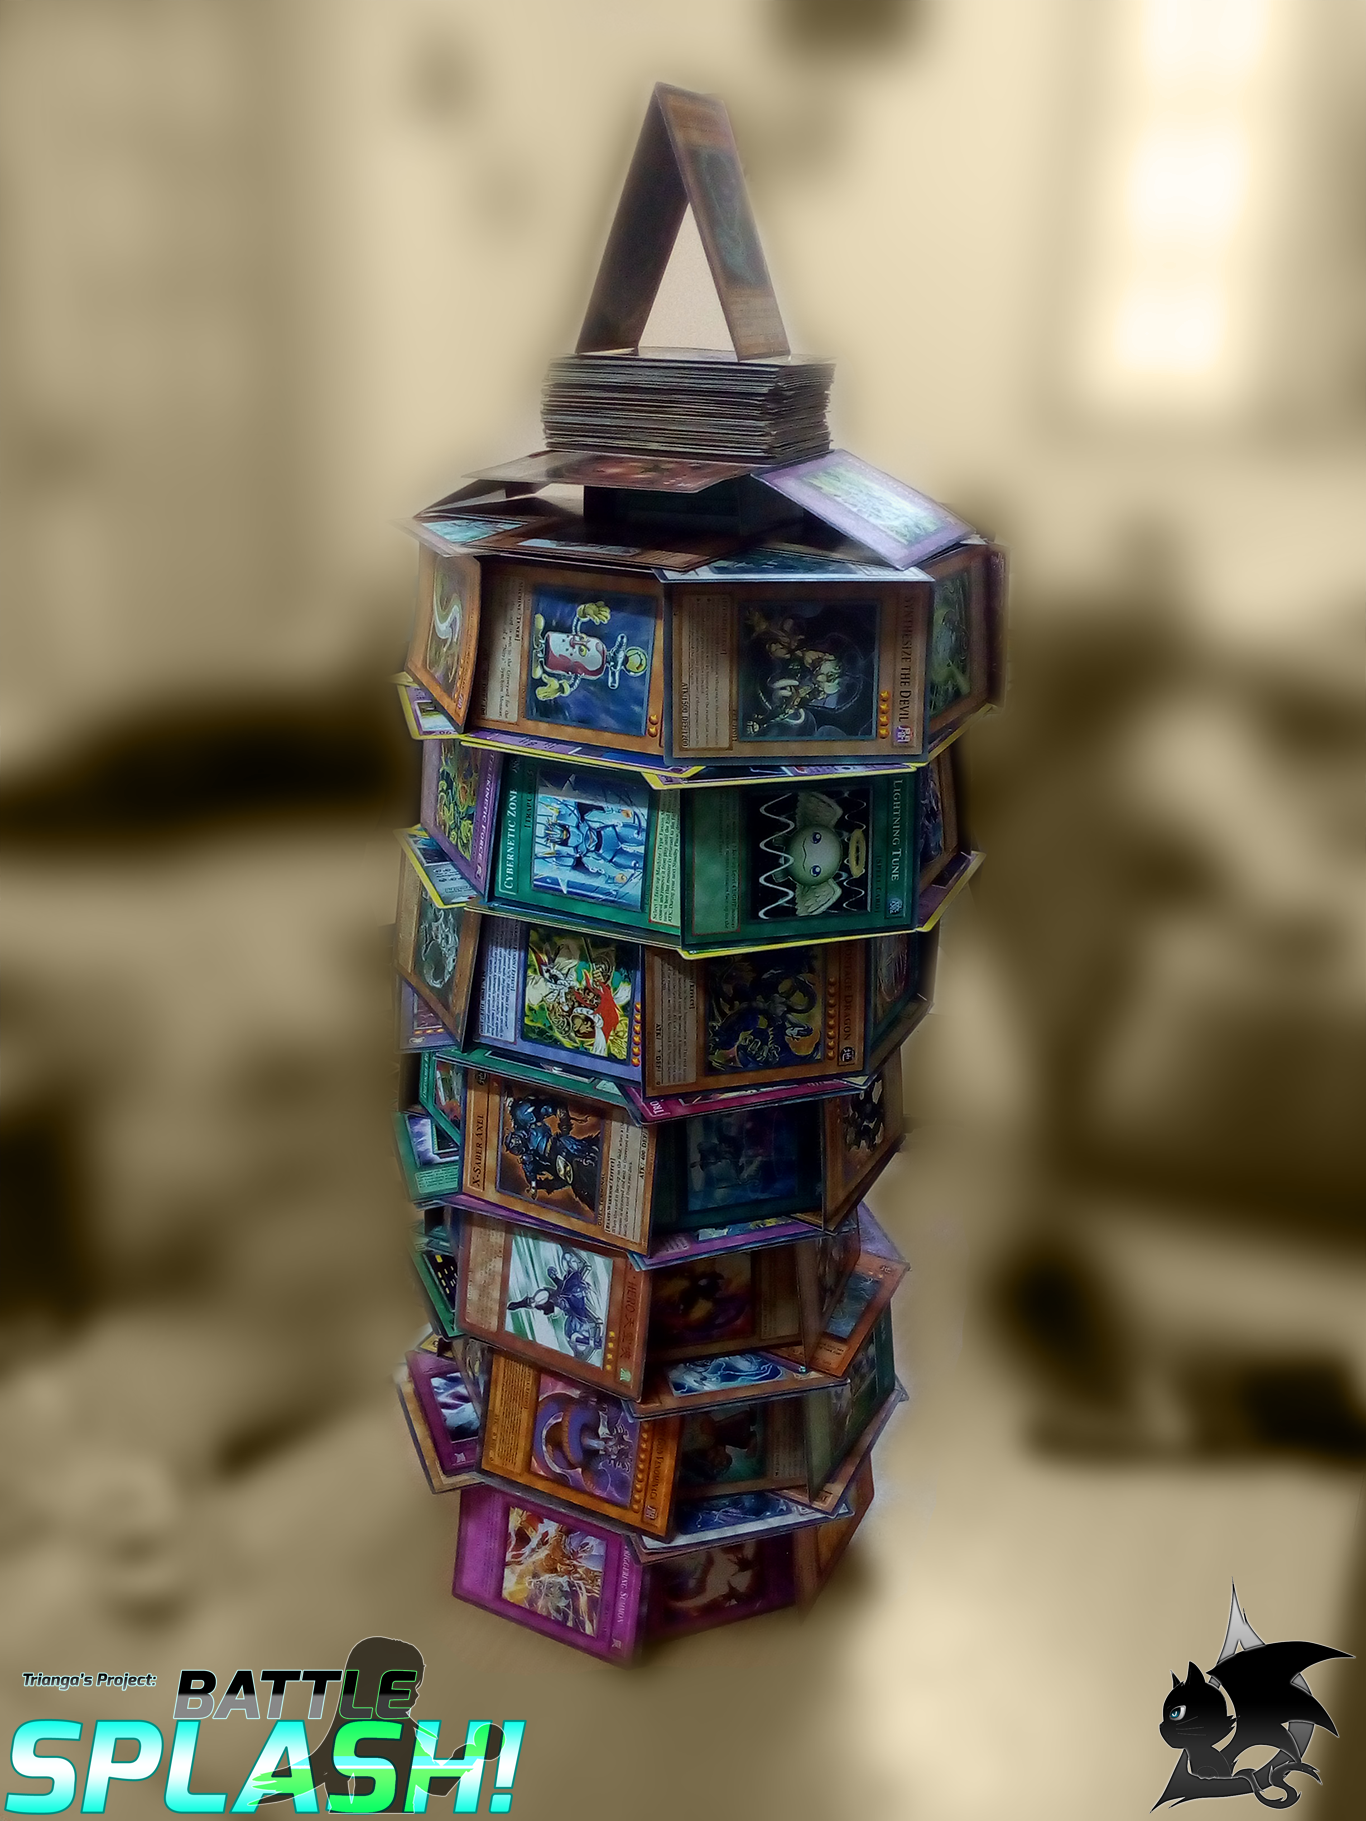 Battle_Splash_Tower_Concept_in_Paper_Wor